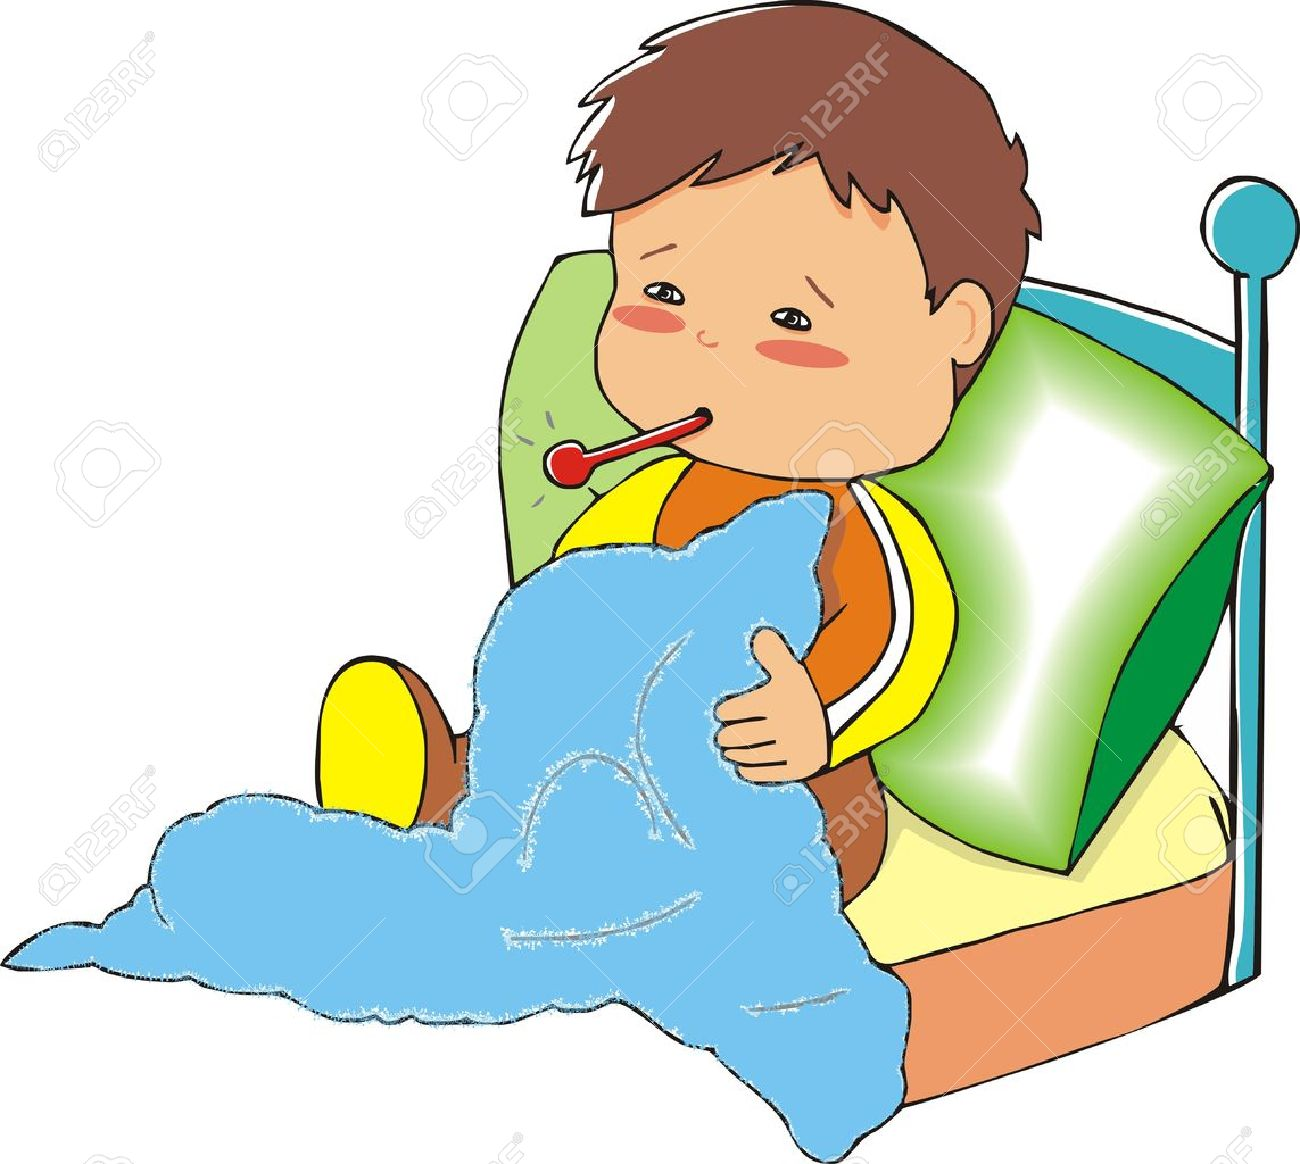 Sick child clipart 3 » Clipart Station.